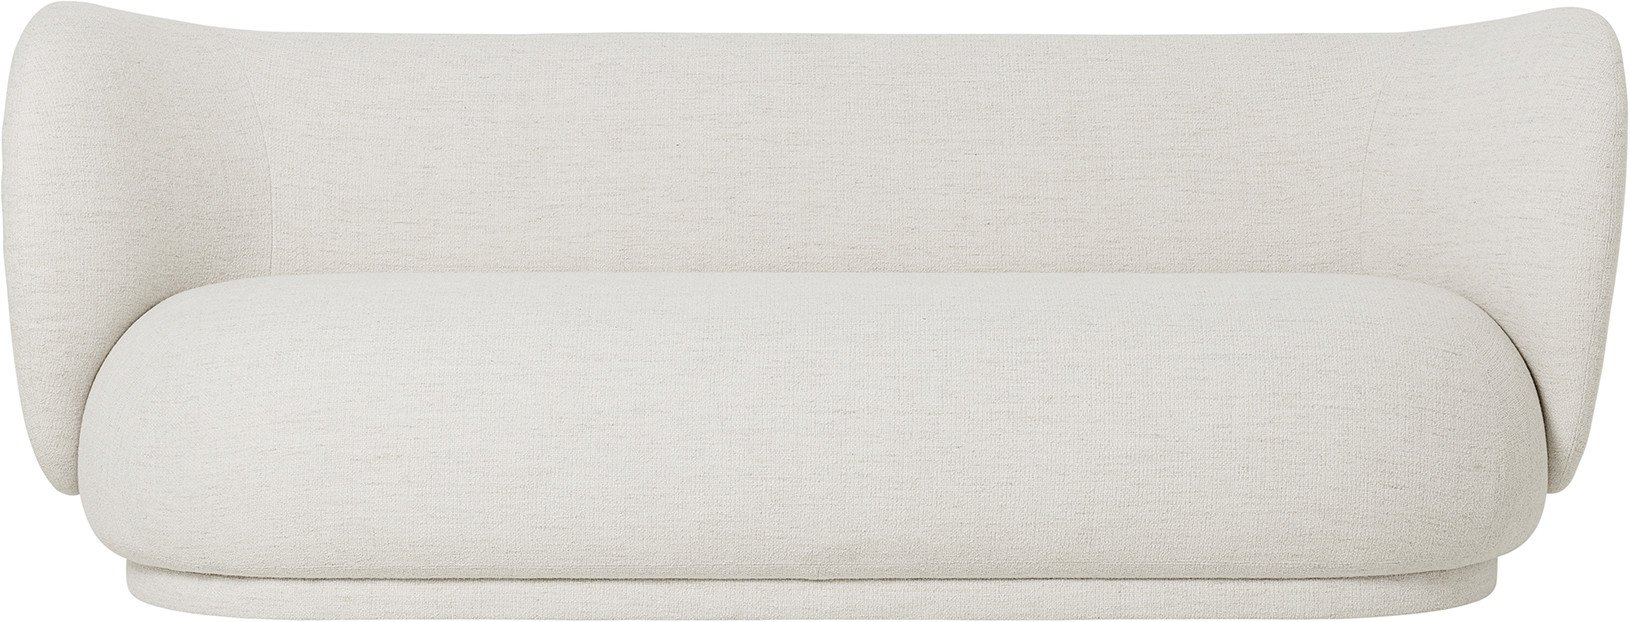 Sofa Rico Boucle Off-White, ferm LIVING